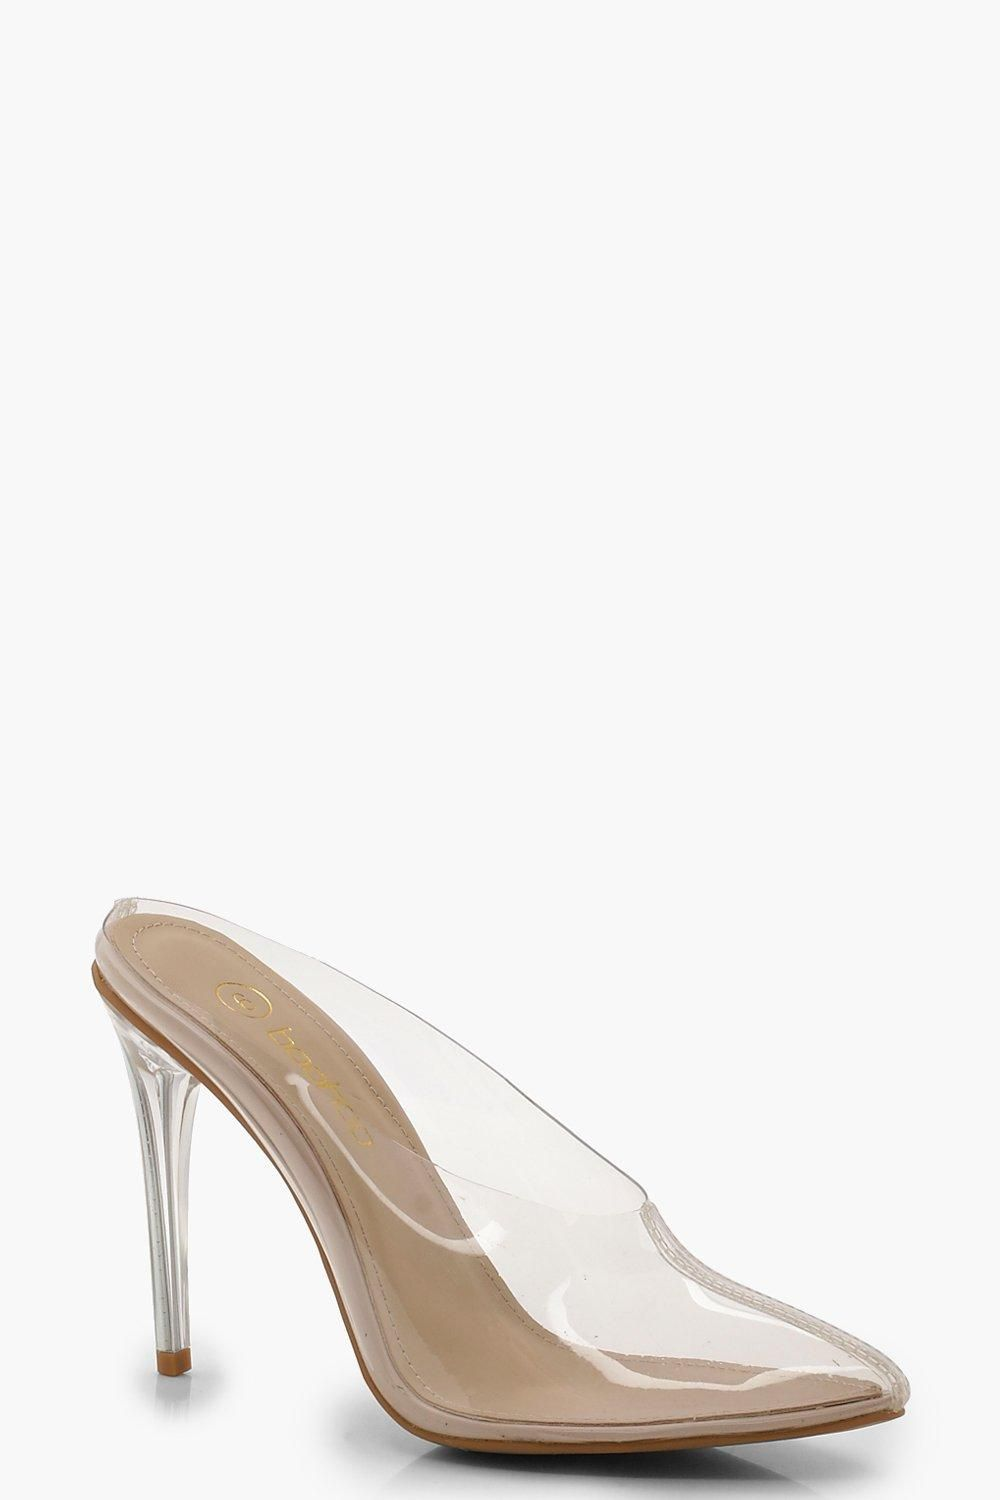 34deec5d265 Clear Pointed Toe Mule Heels